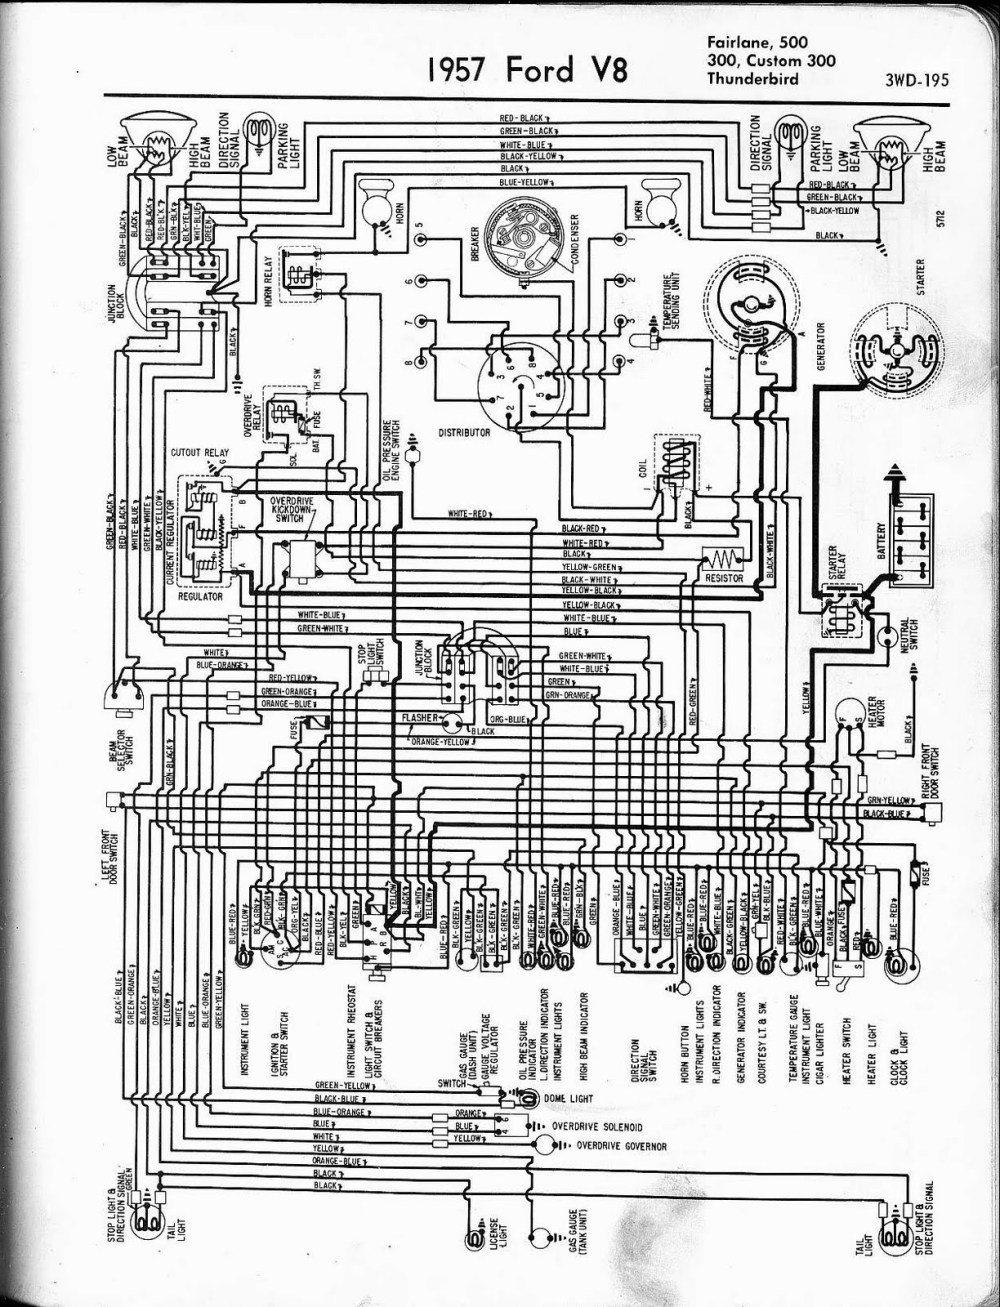 medium resolution of 1956 ford wiring diagram wiring diagram for you 1959 ford f100 wiring diagram 1957 ford f100 wiring diagram